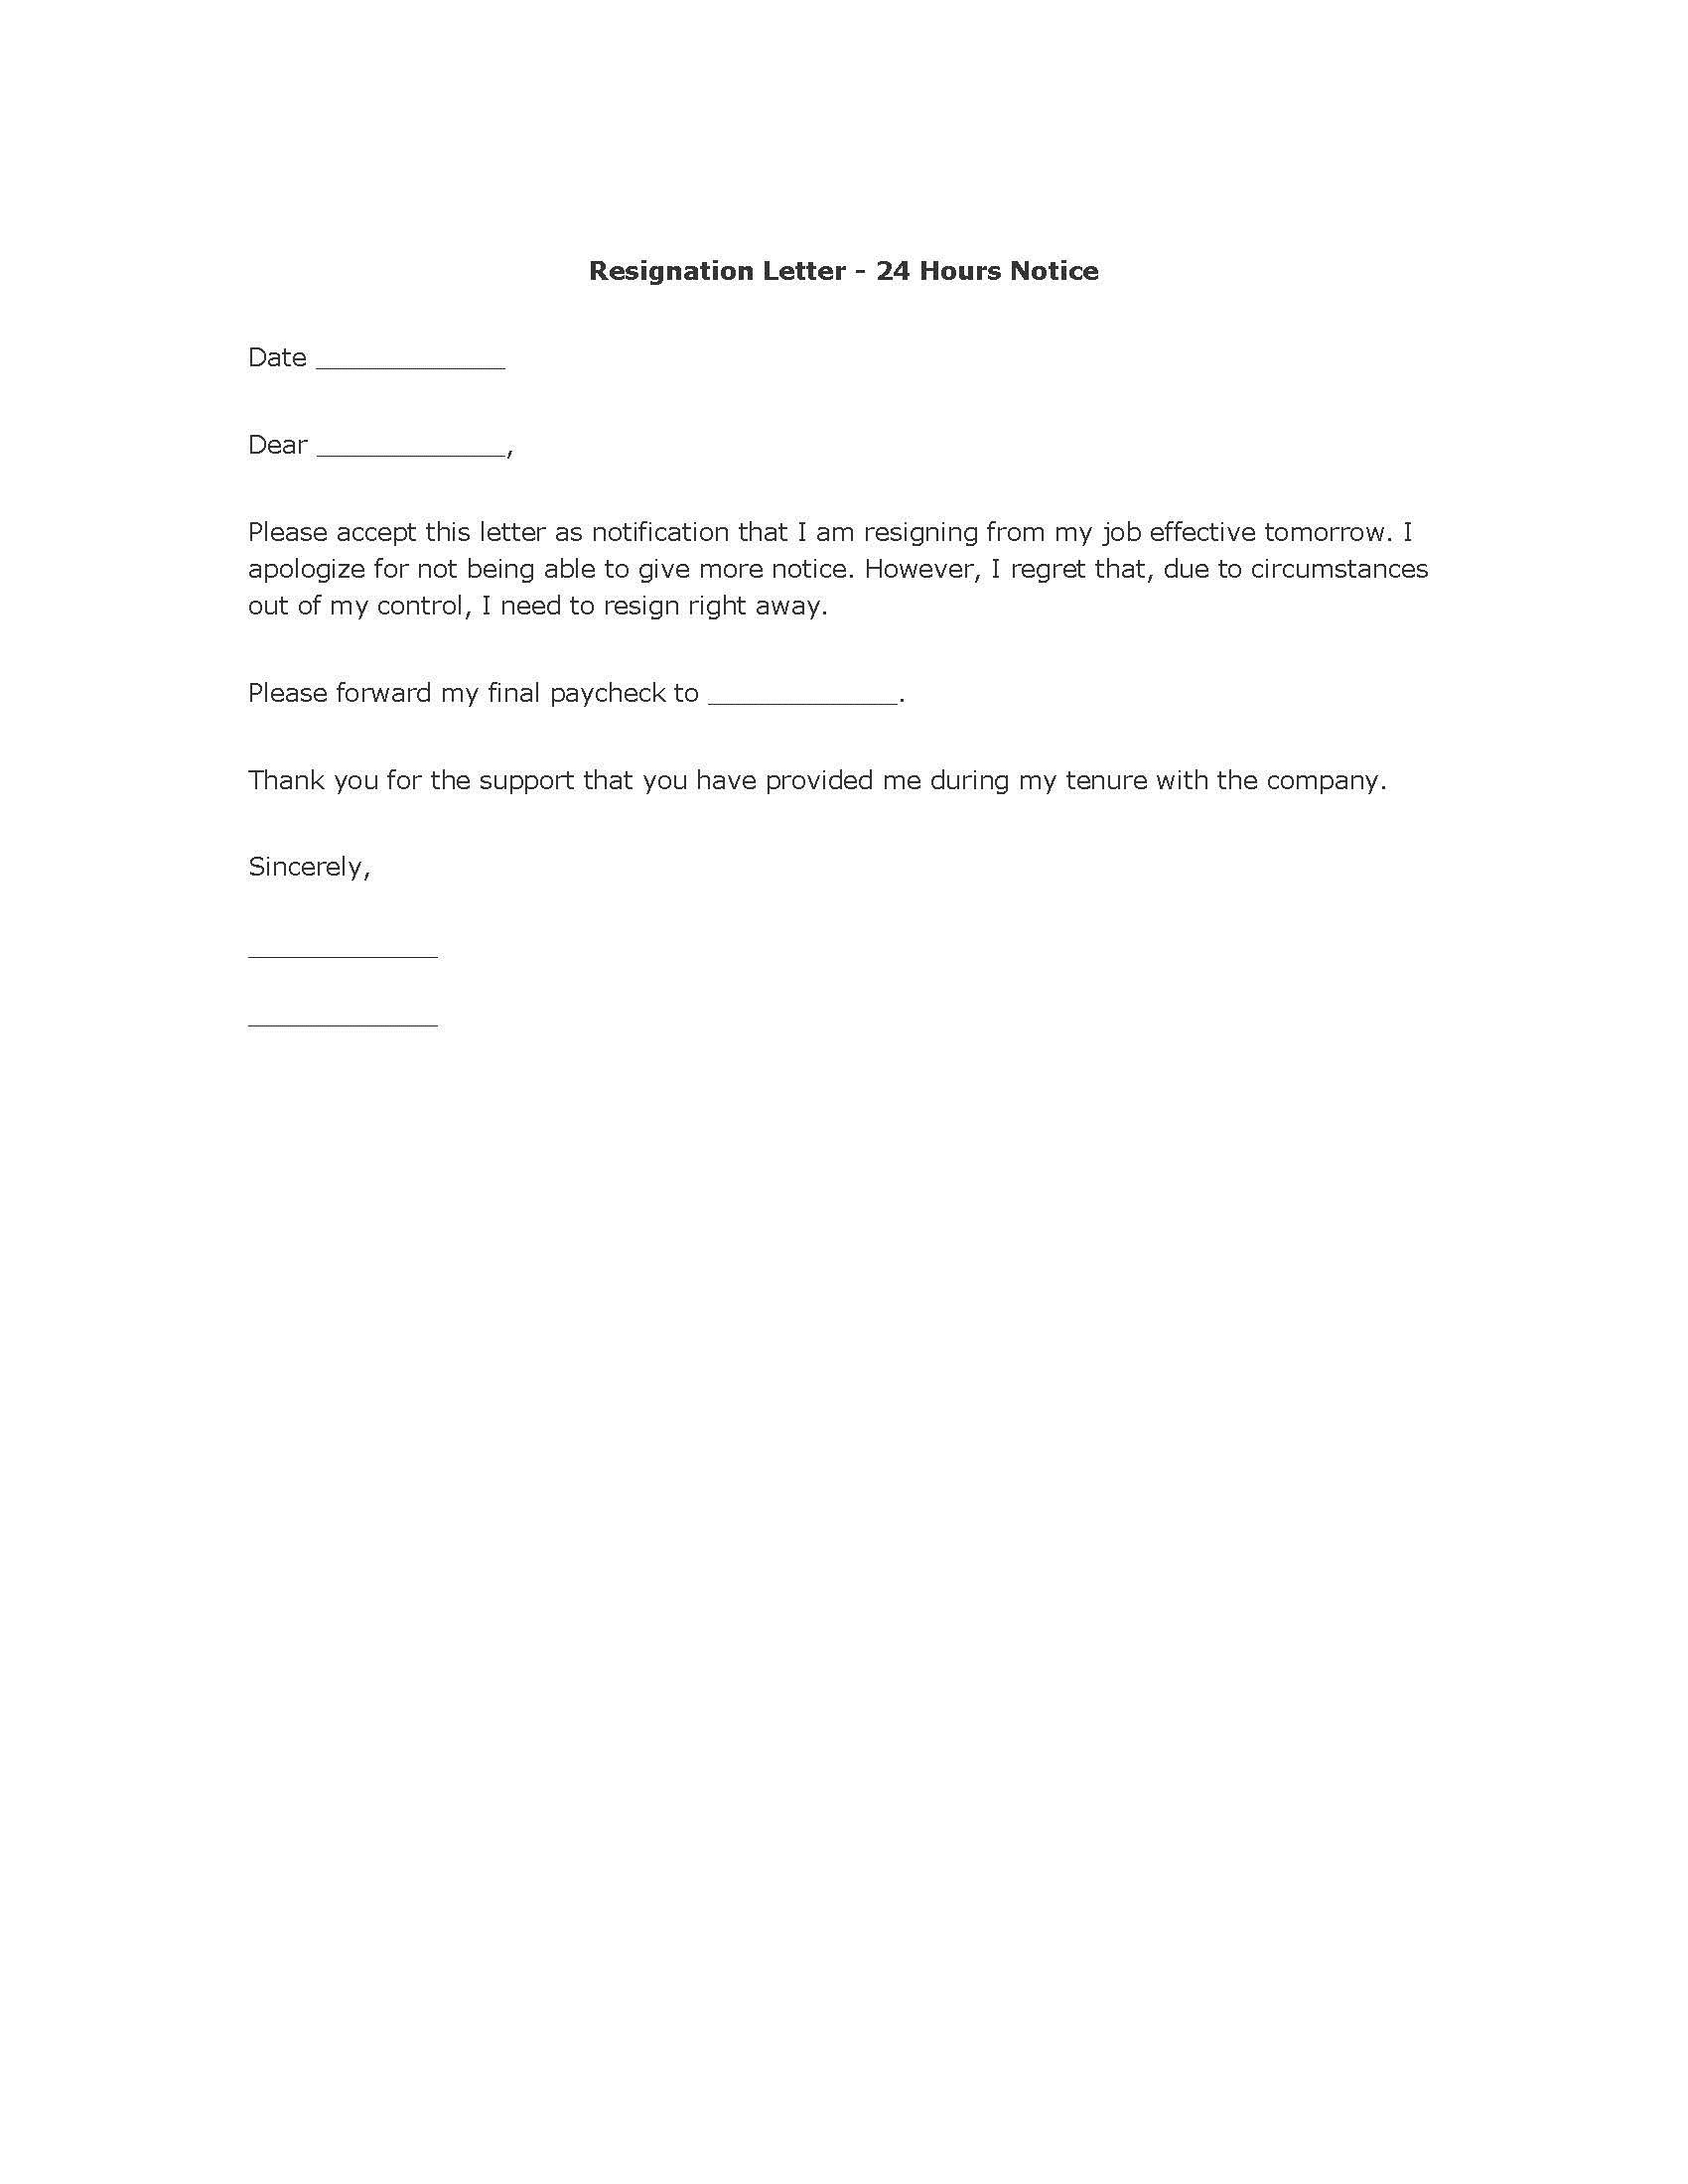 004 Unbelievable Template For Letter Of Resignation Picture  Free With Notice Period WordFull